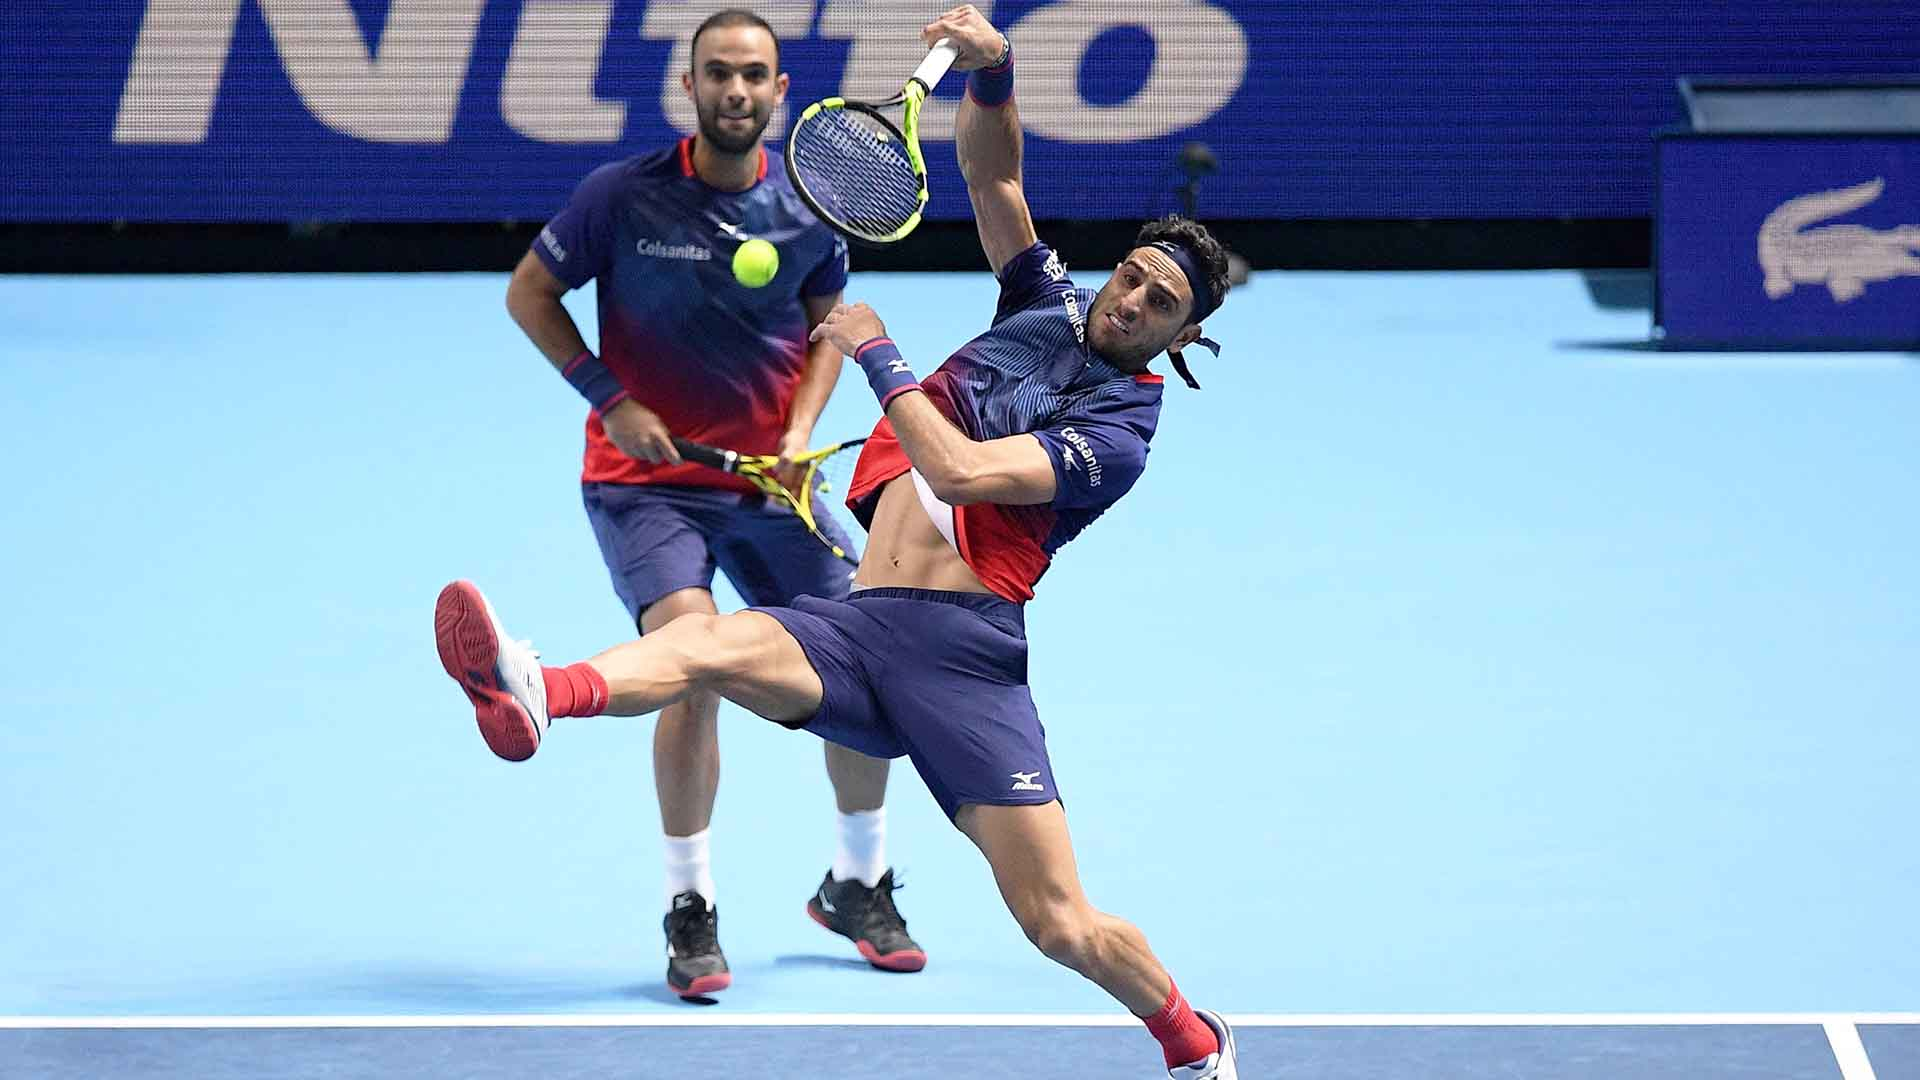 <a href='https://www.atptour.com/en/players/juan-sebastian-cabal/c834/overview'>Juan Sebastian Cabal</a> and <a href='https://www.atptour.com/en/players/robert-farah/f525/overview'>Robert Farah</a> exit the <a href='https://www.atptour.com/en/tournaments/nitto-atp-finals/605/overview'>Nitto ATP Finals</a> at the semi-final stage for the second straight year.